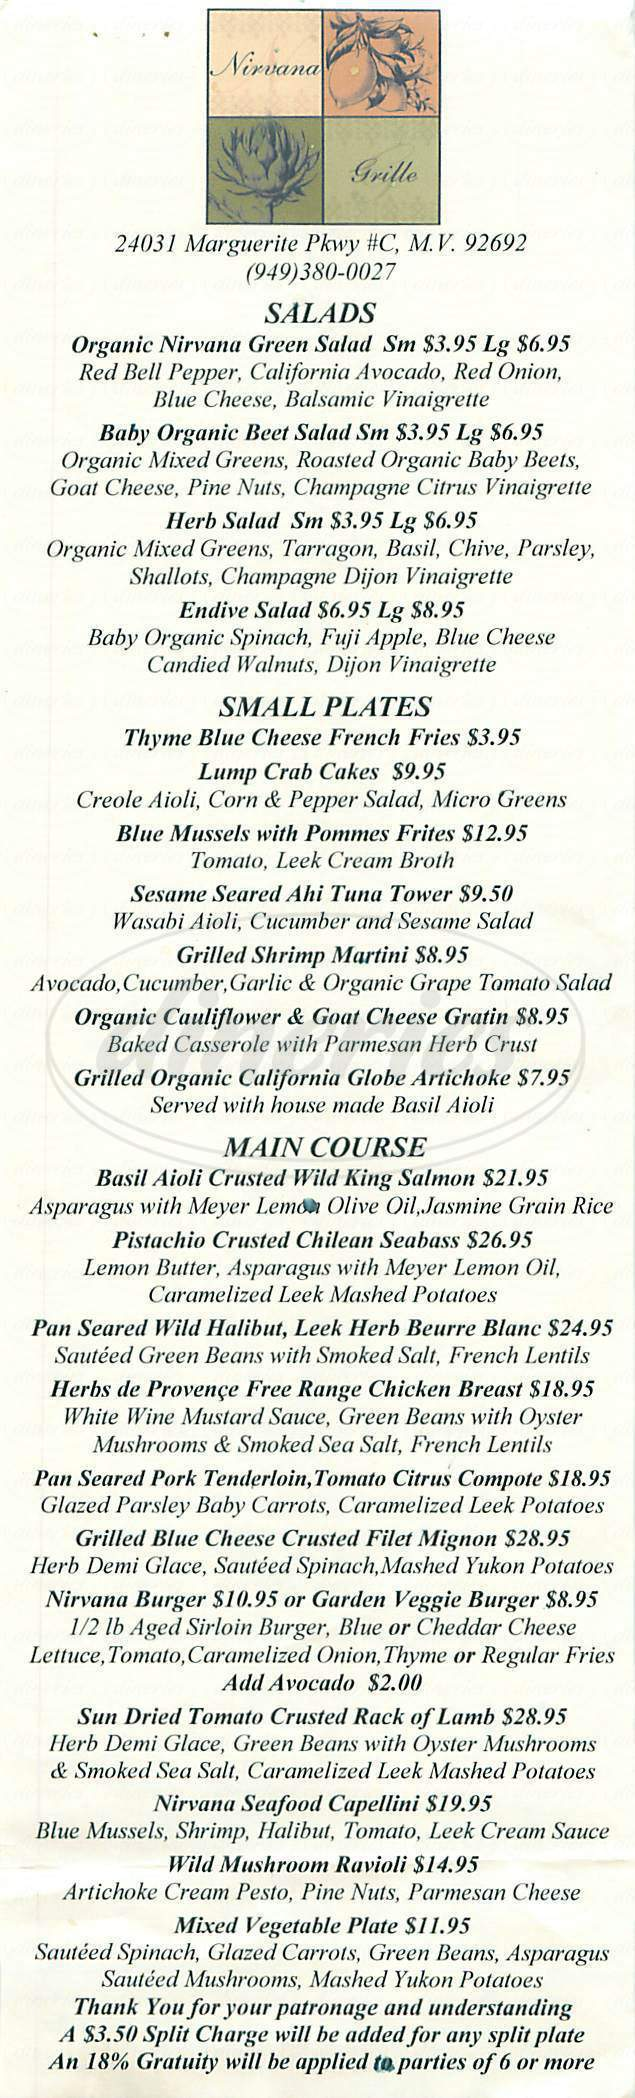 menu for Nirvana Grille